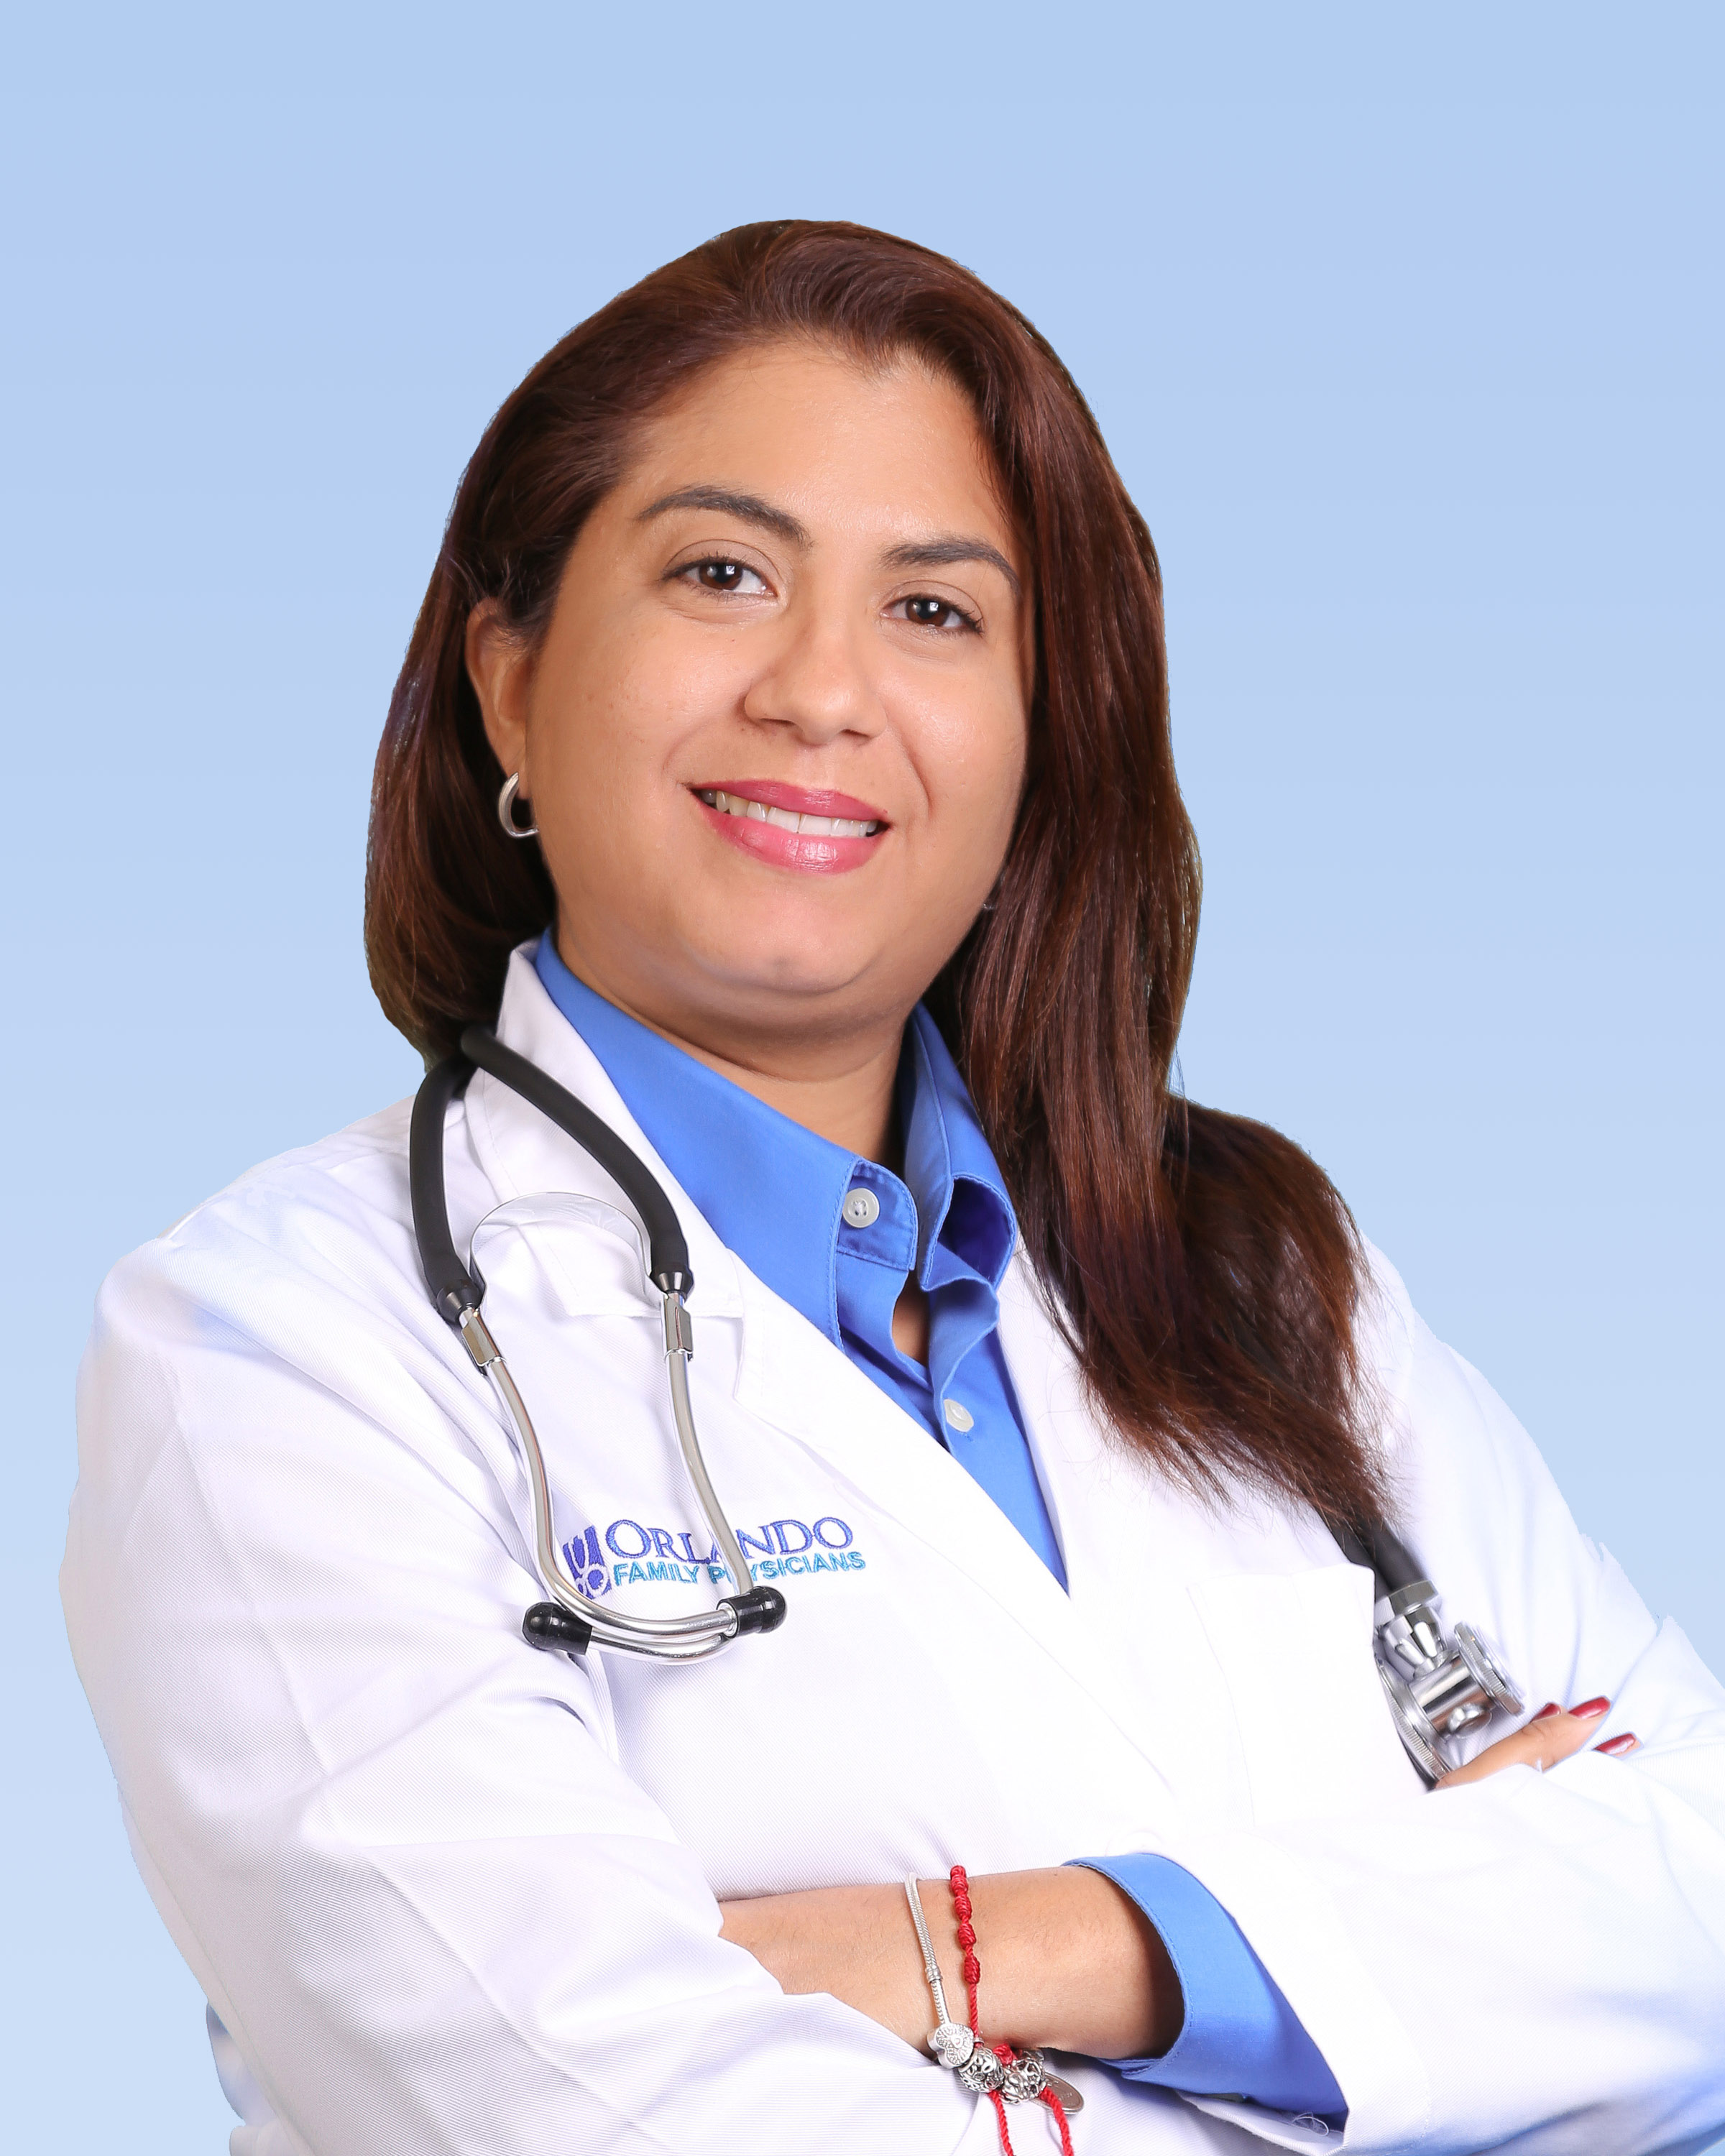 Marieli M Mayoral Md Orlando Family Physicians